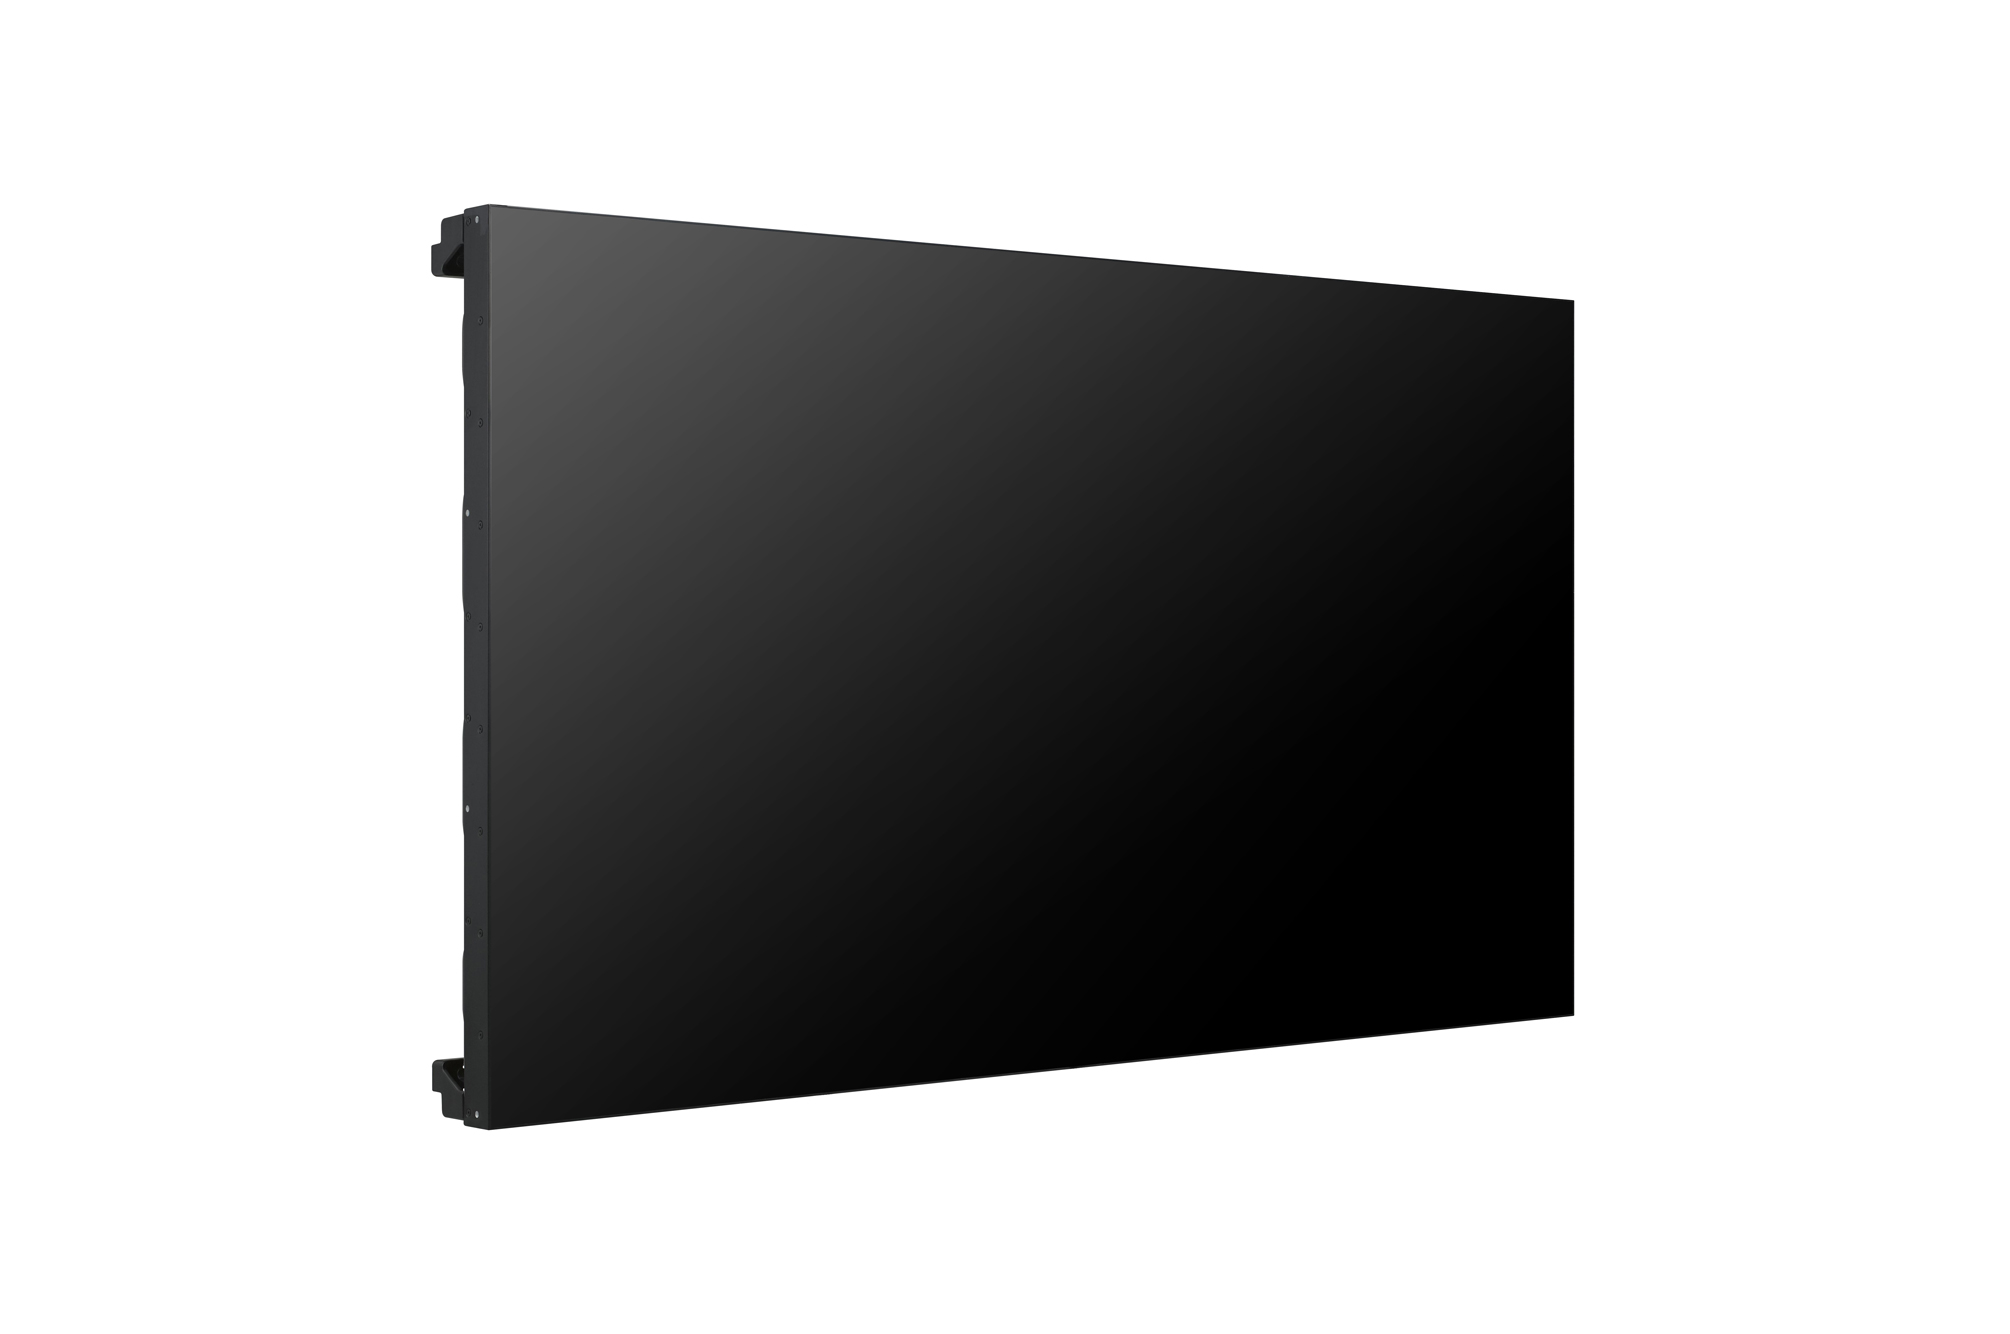 LG Video Wall 55VL7F-A 3